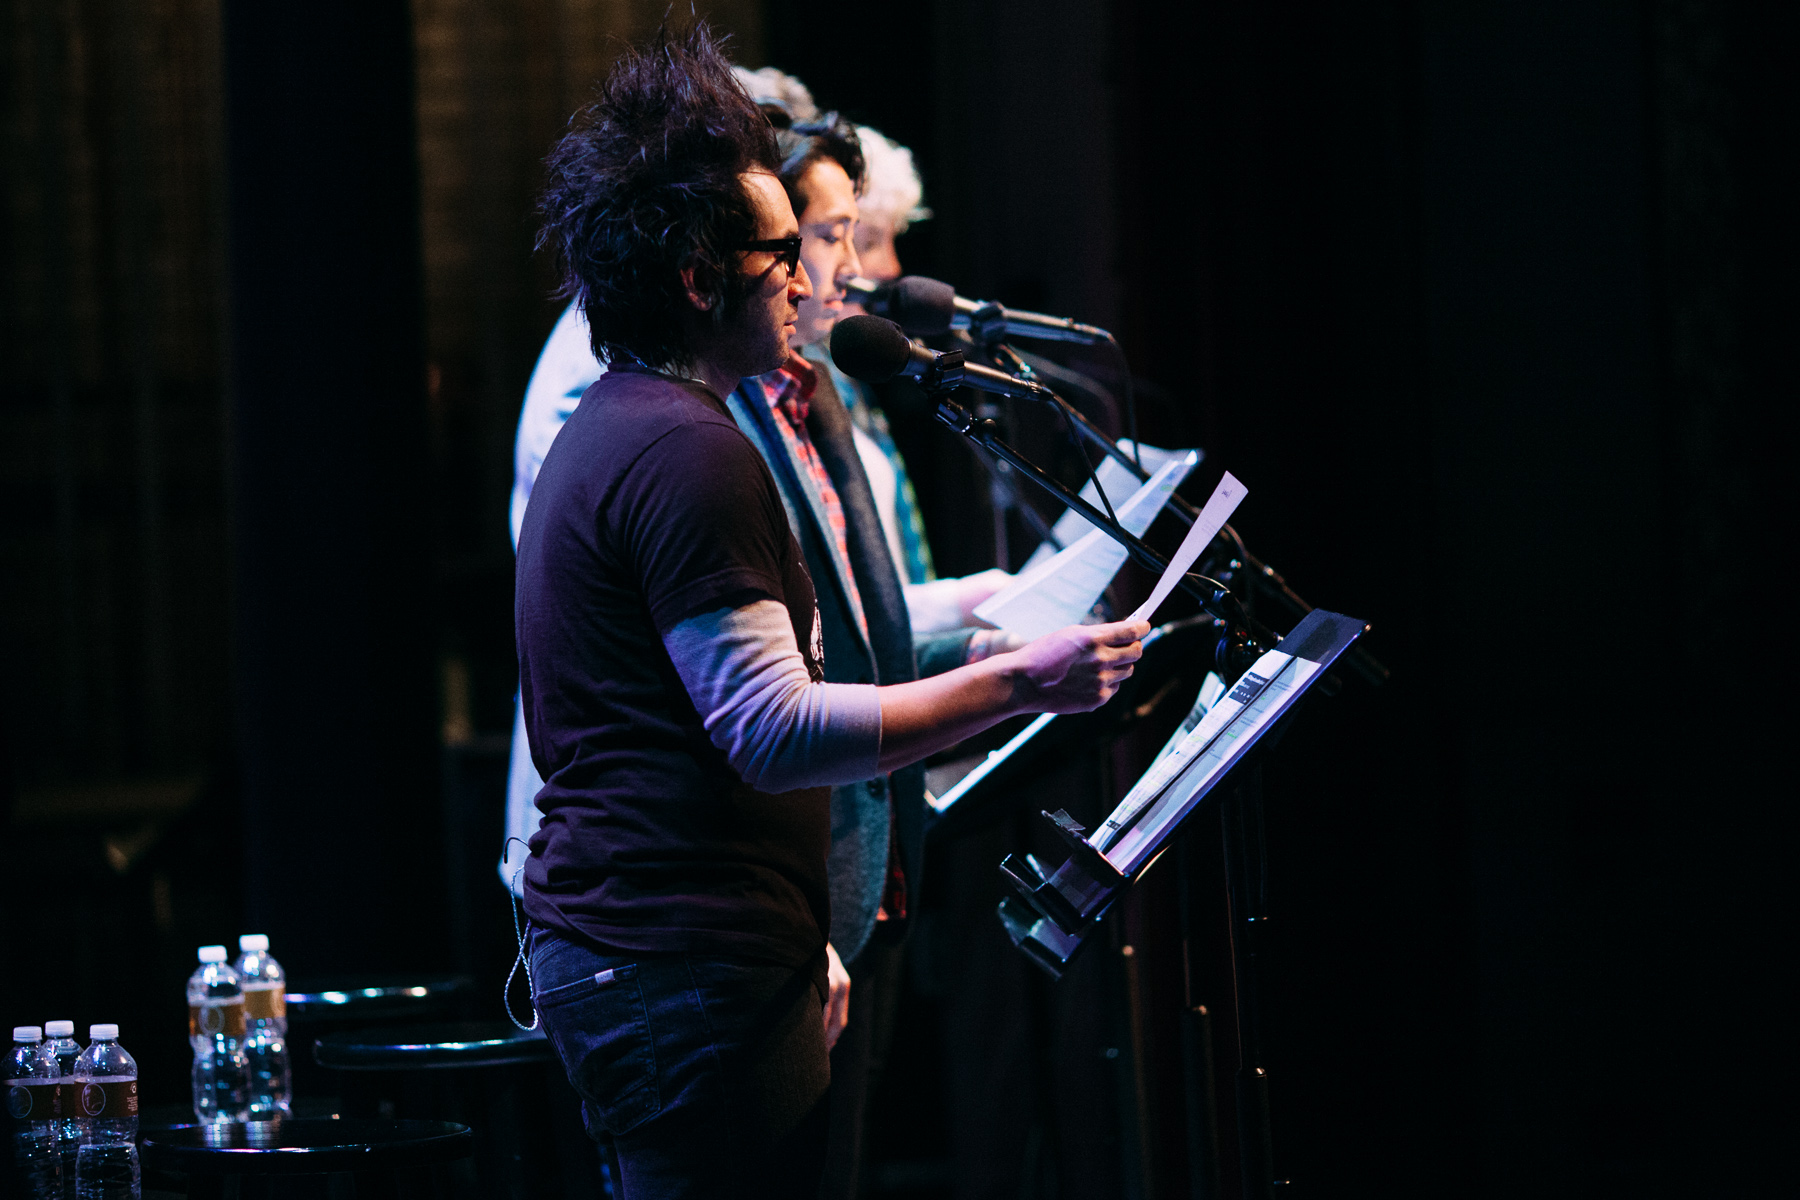 Motion_City_Soundtrack_And_Steven_Yeun_Perform_On_Wits_048.JPG